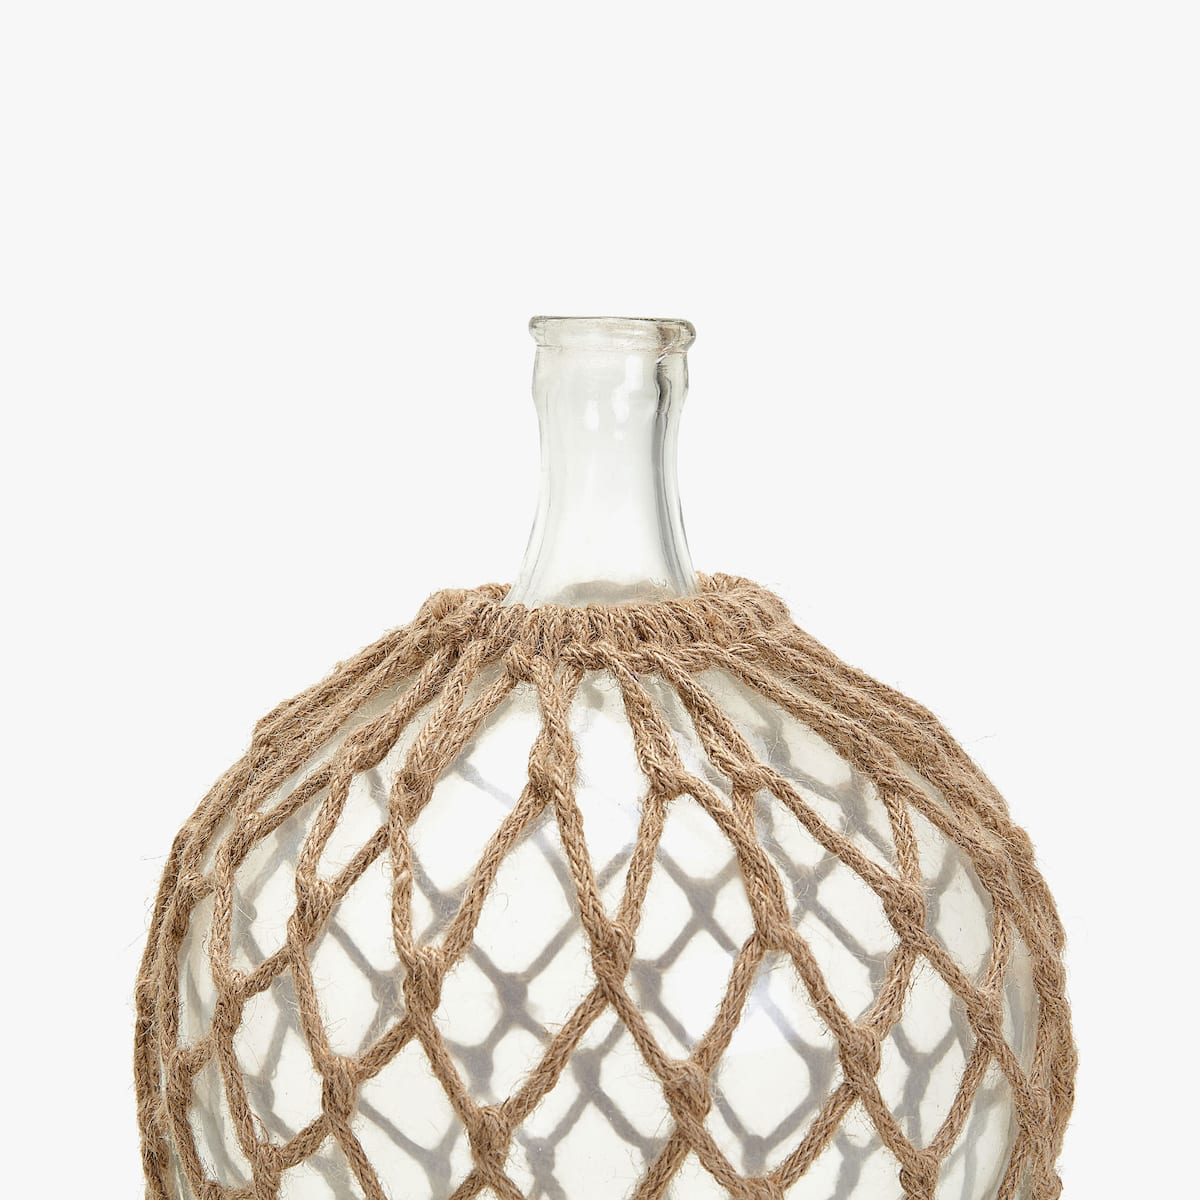 Image 3 Of The Product DECORATIVE GLASS AND JUTE BOTTLE